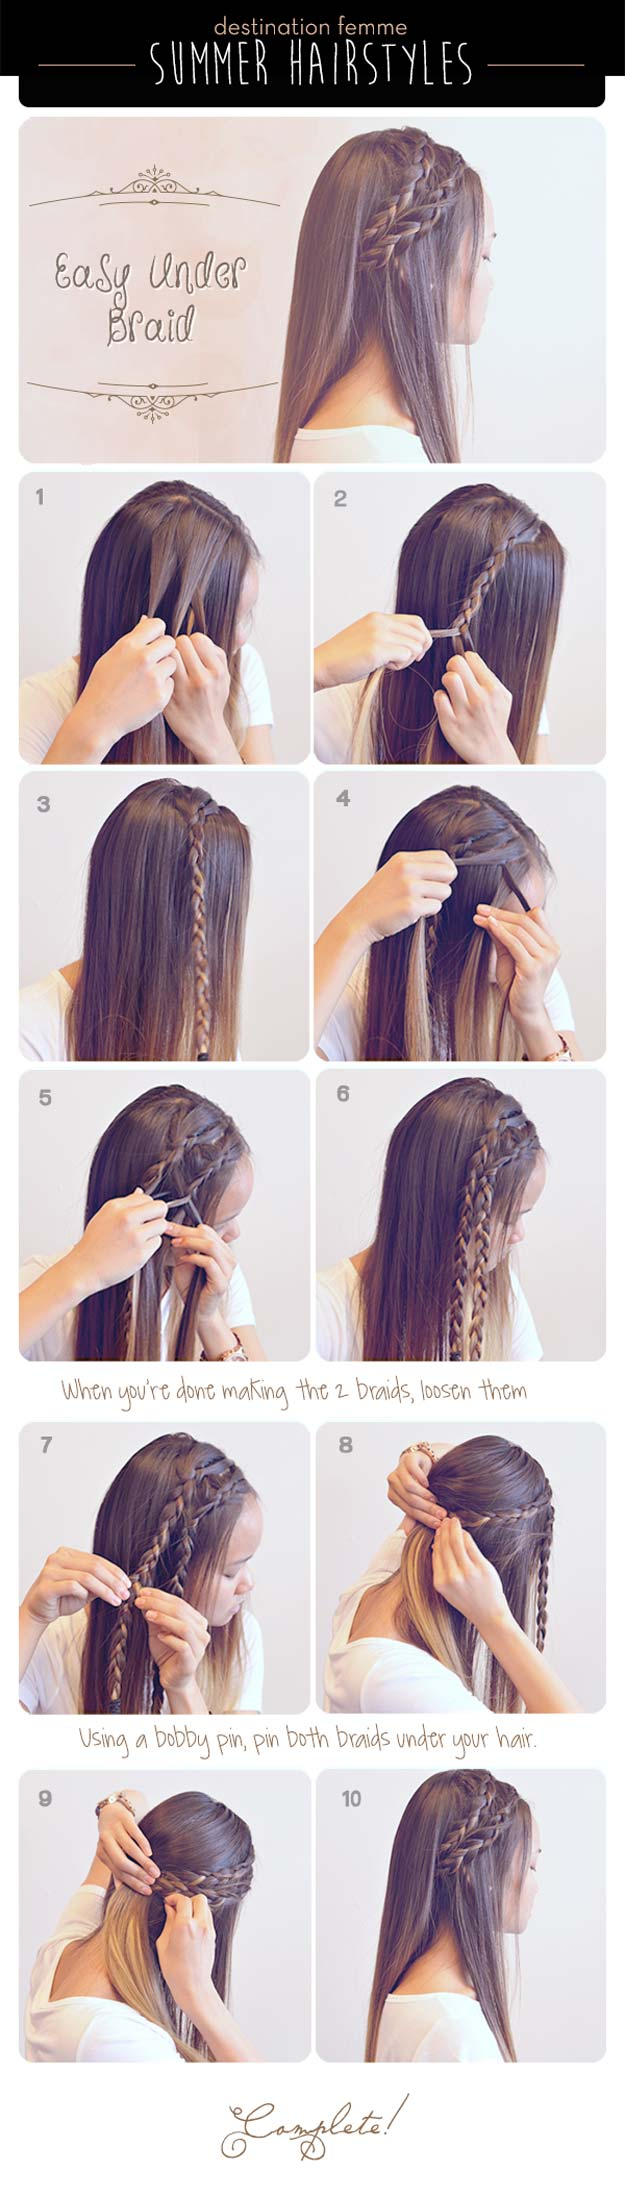 Wondrous 40 Of The Best Cute Hair Braiding Tutorials Diy Projects For Teens Short Hairstyles Gunalazisus